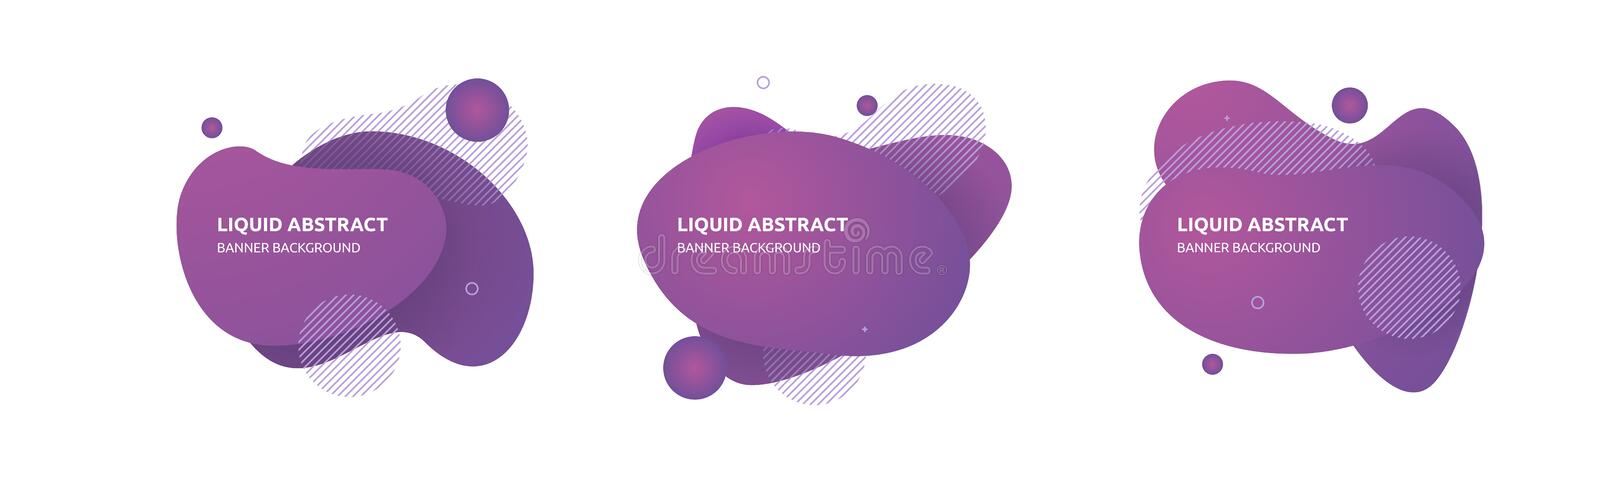 Set of abstract backgrounds with liquid shapes stock illustration